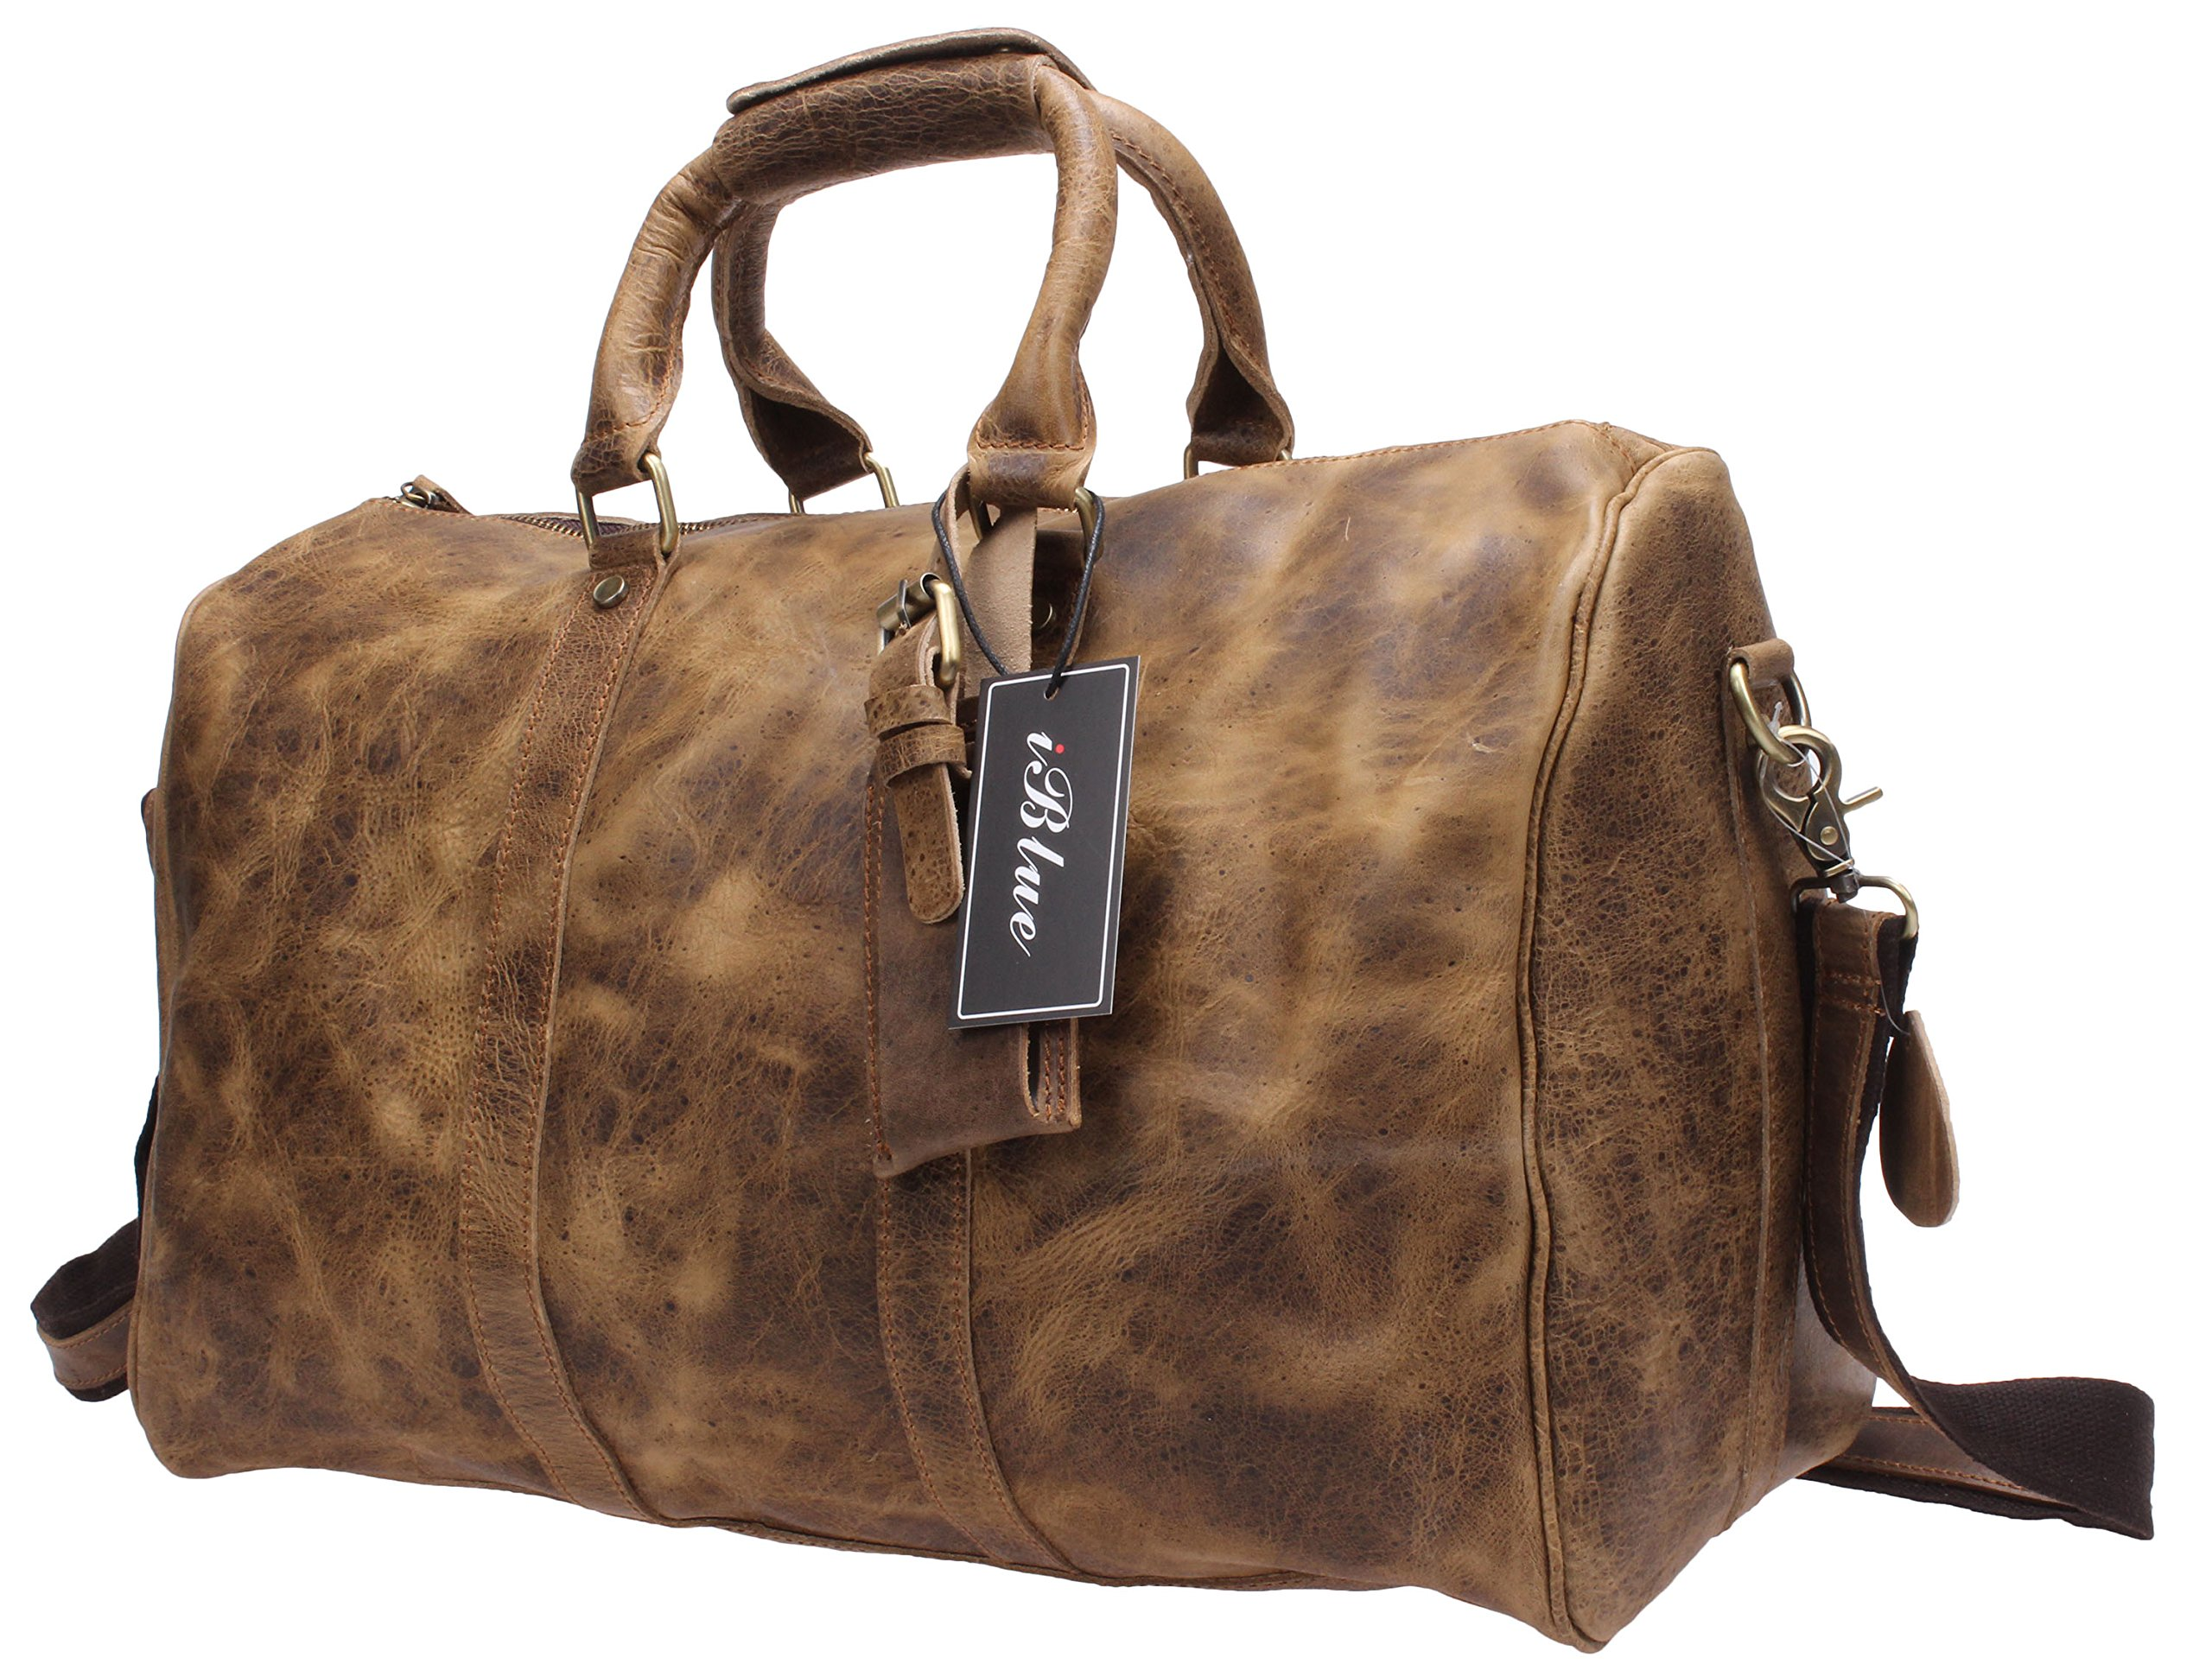 Iblue Men Leather Duffle Travel Overnight Weekend Bag Brown D03 (L, brown with spot)